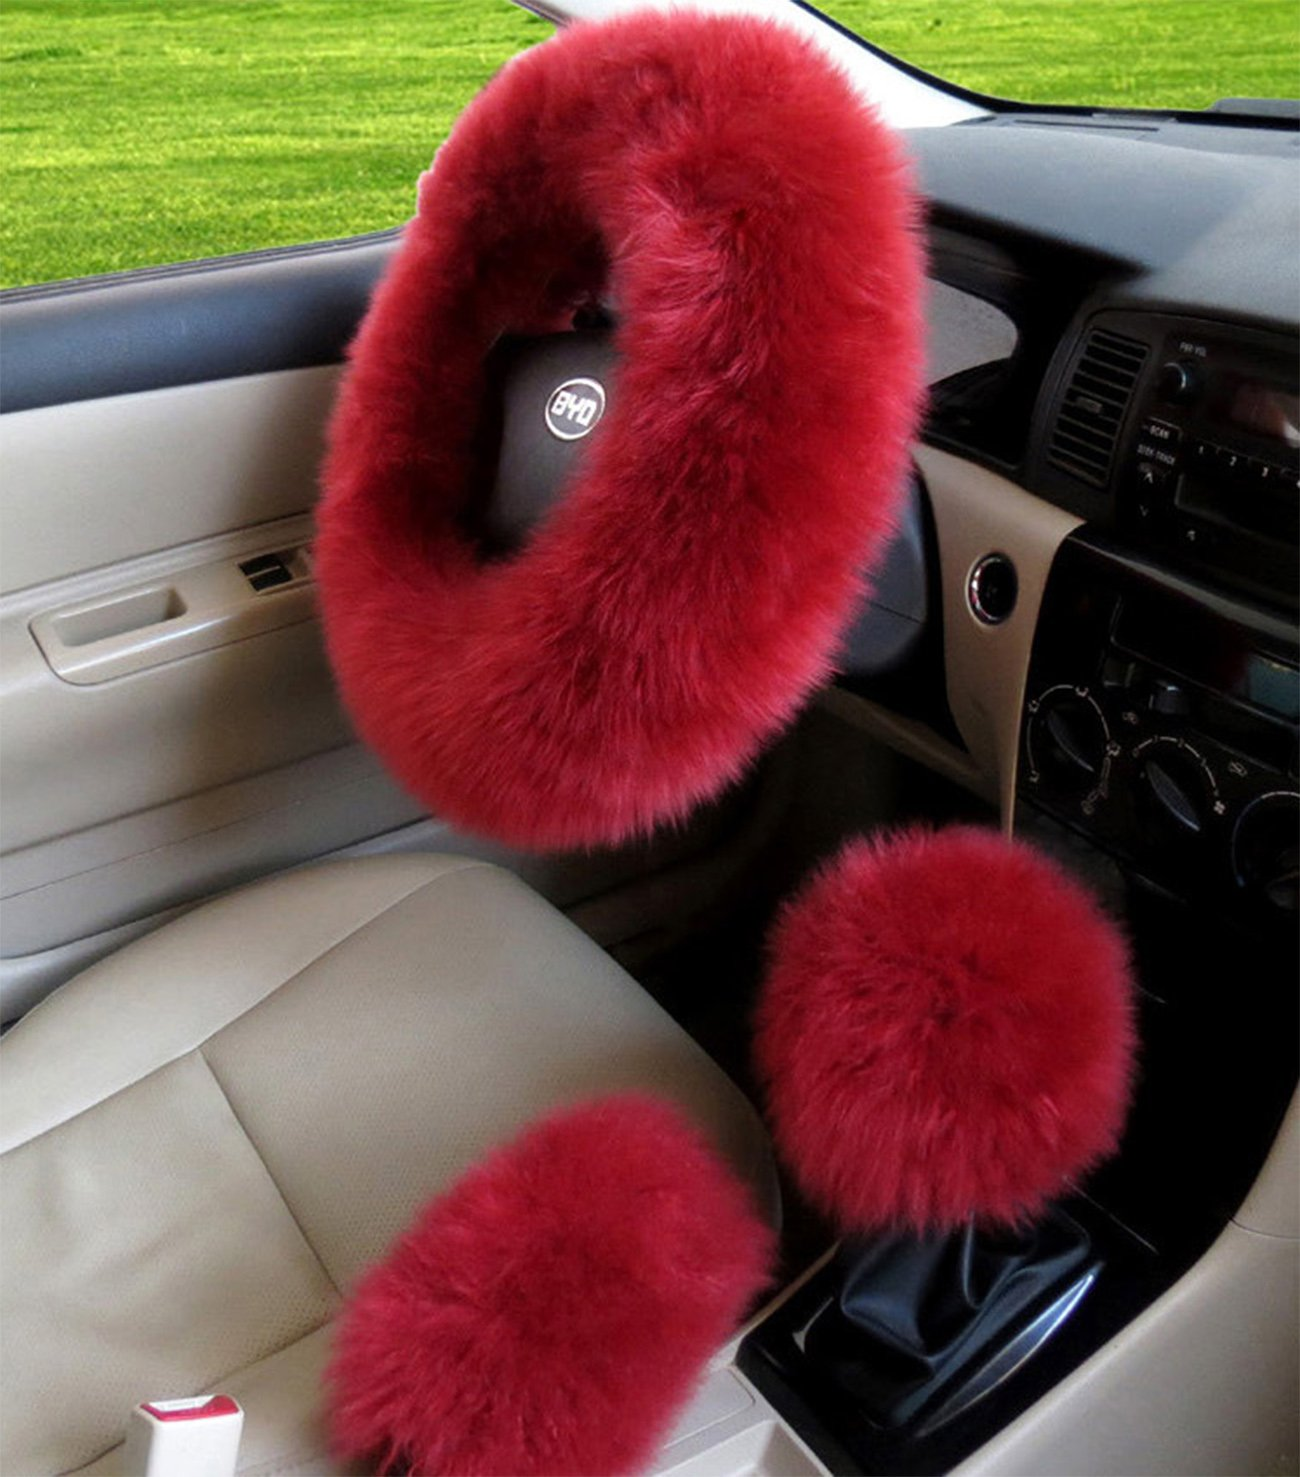 BELLESIE 3pcs 1 Set Soft Fluffy Plush Australian Wool Car Steering Wheel Cover with Handbrake Cover & Gear Shift Cover for 14.96' X 14.96' Steeling Wheel in Diameter